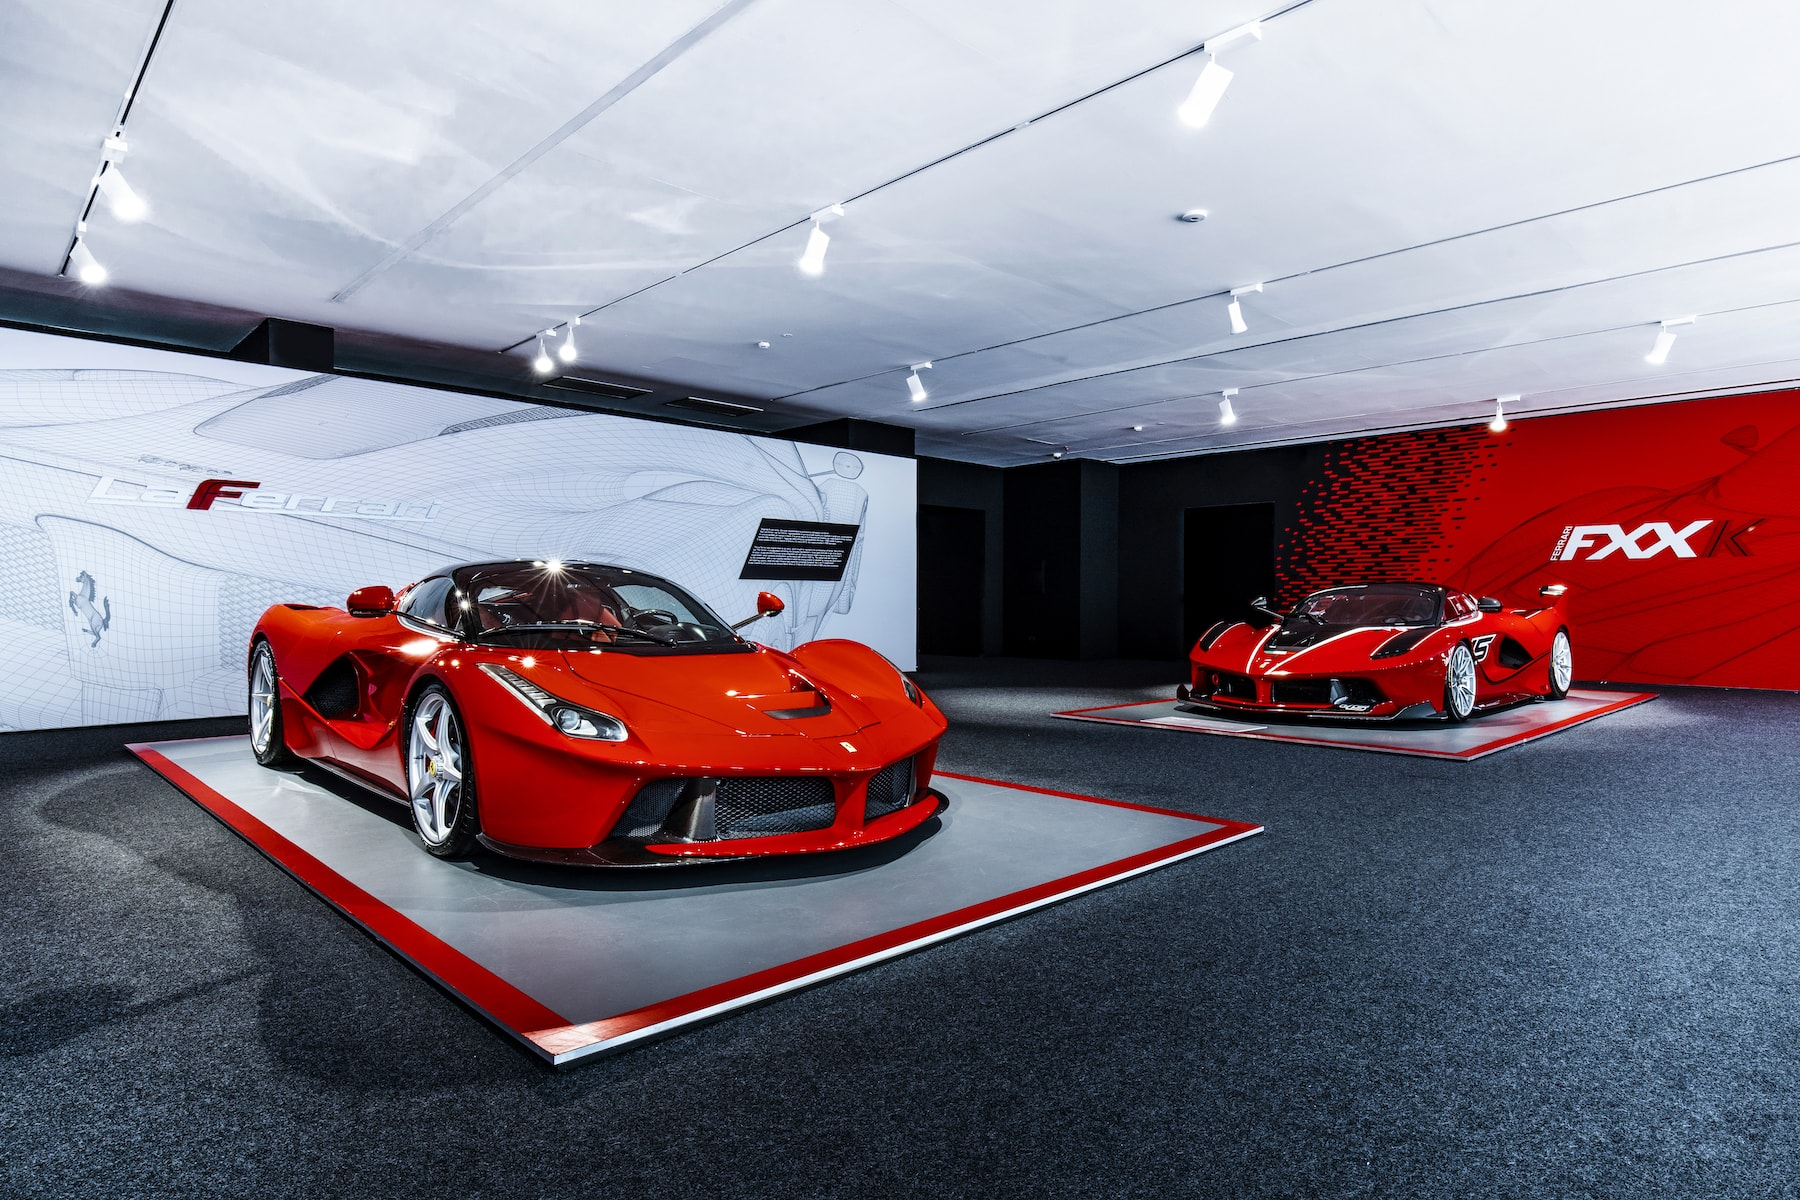 2019 Museo Ferrari 90 years exhibition 17.jpg